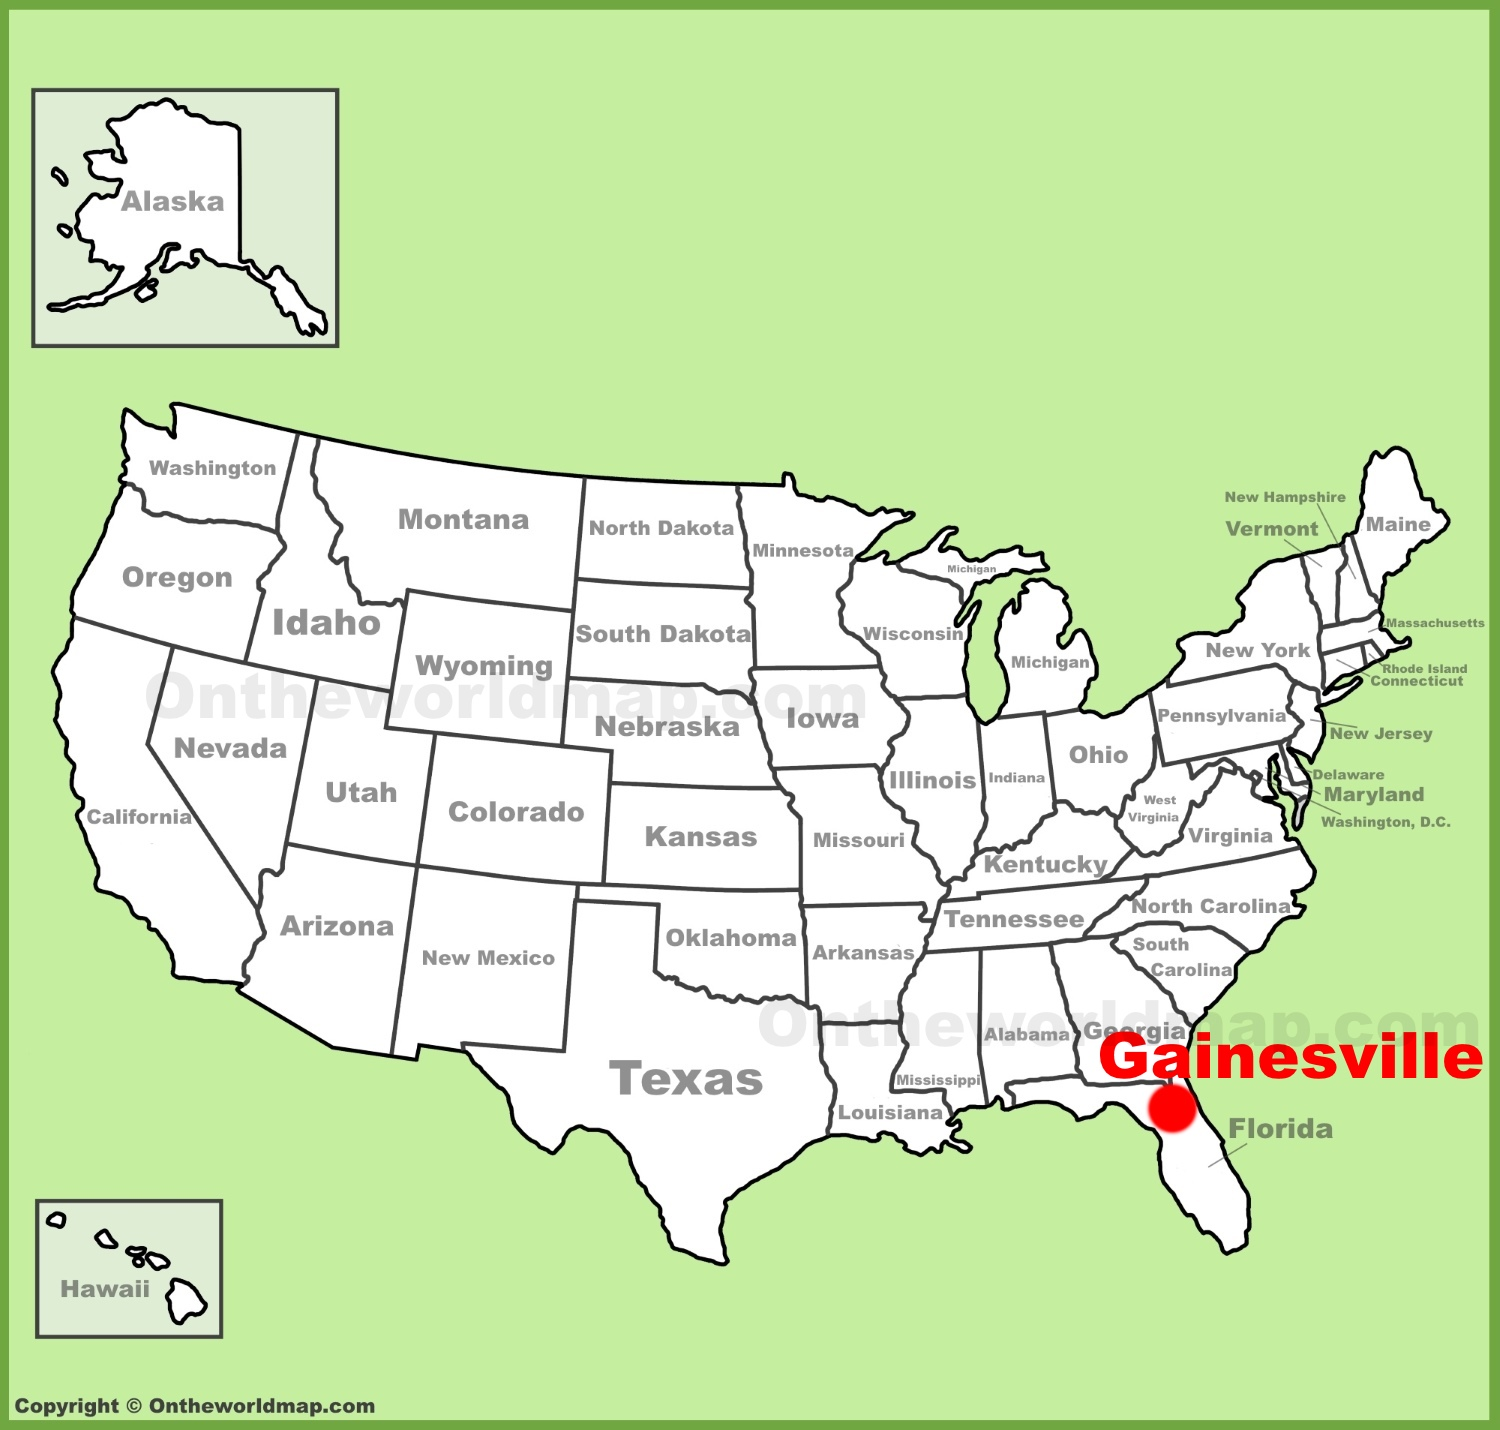 Gainesville location on the U.S. Map on st. petersburg-clearwater map, fort myers naples map, dallas co map, ocala fl map, winnsboro map, beckley map, alachua county fl zip code map, ladonia map, toccoa falls college map, san francisco intl airport map, hollins map, w palm beach map, city of mcdonough ga map, narcoossee map, forsyth map, south fort myers map, gainsville fl map, florida map, ferrum map, raytown map,